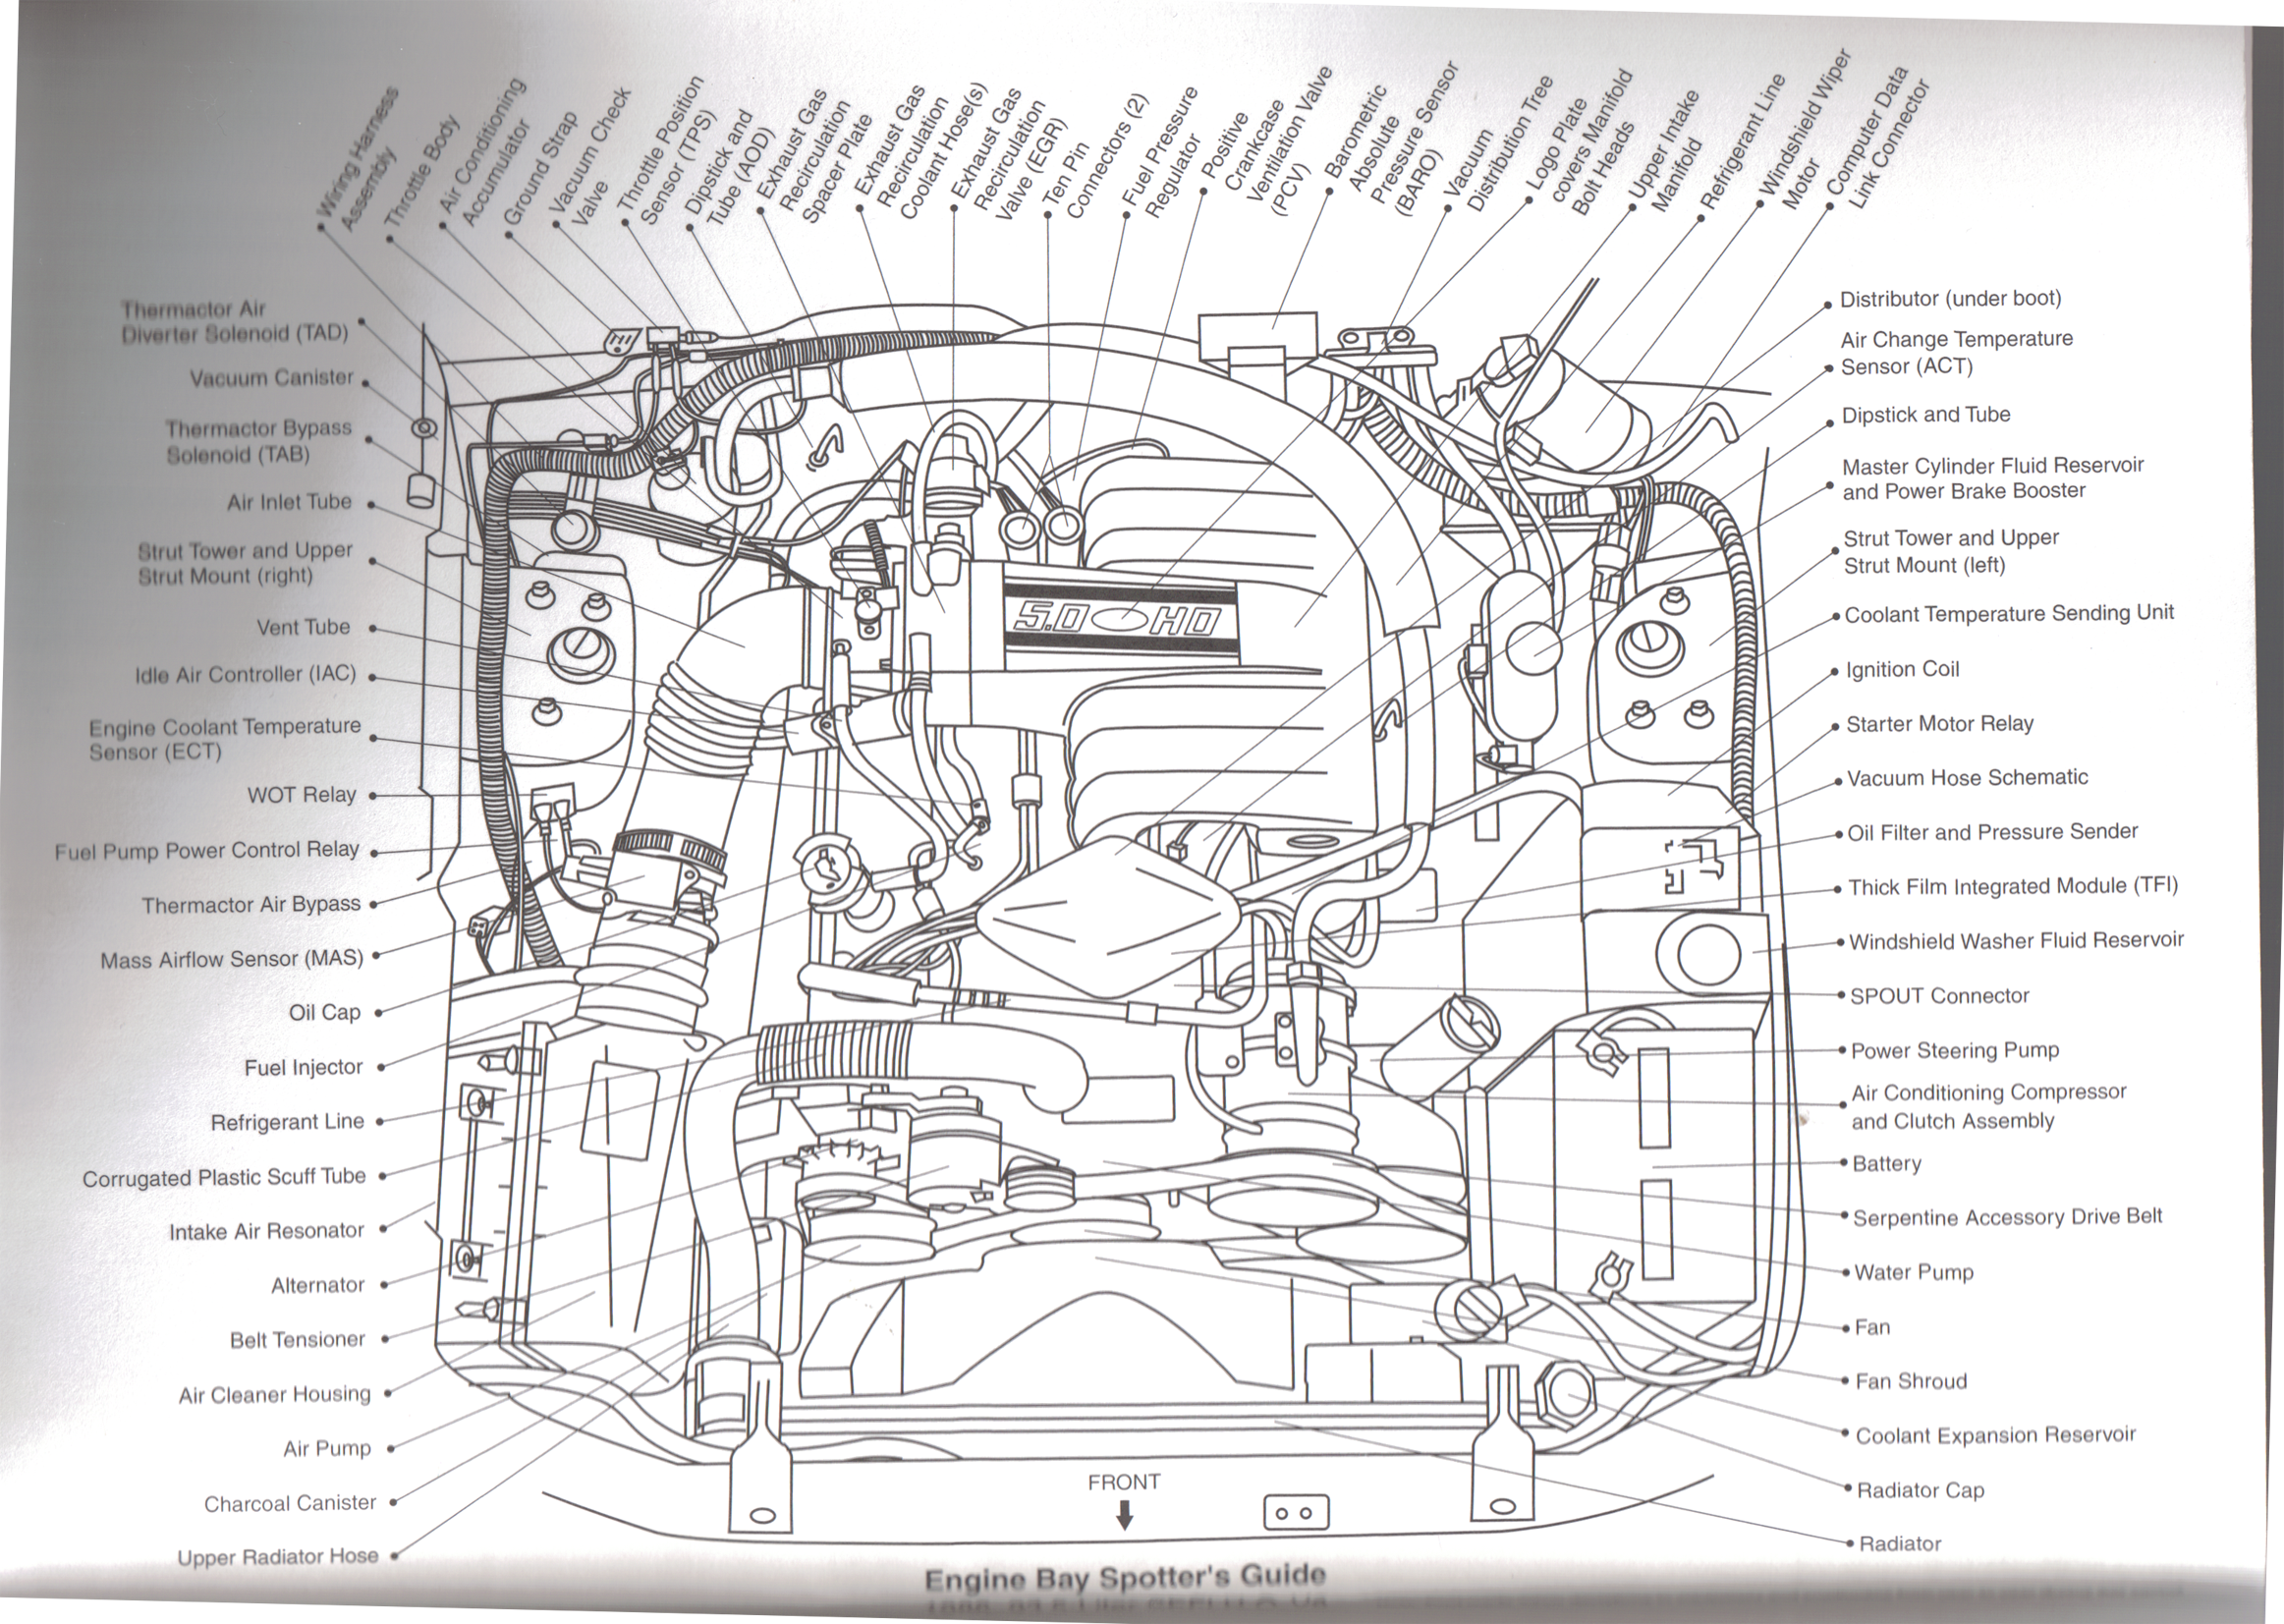 1992 Ford Mustang Diagram List Of Schematic Circuit 1991 Fuse Box Everything You Need To Know About 1979 1993 Foxbody Mustangs Rh Americanmuscle Com Vacuum